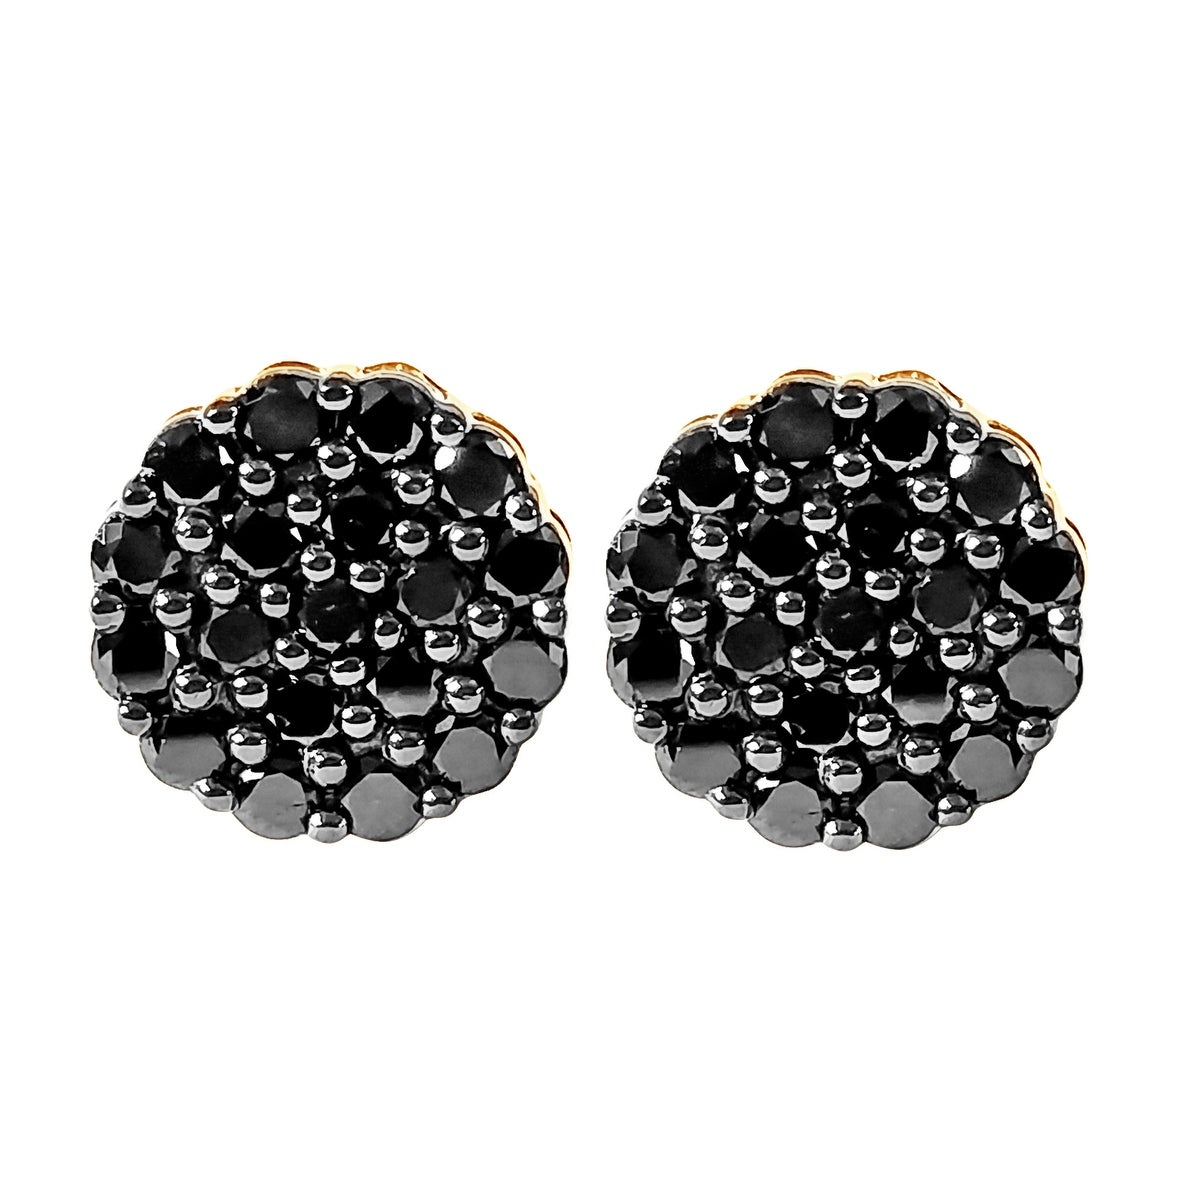 Prism Jewel 1.00Ct Round Black Diamond Cluster Earring With Screw Back - Thumbnail 0